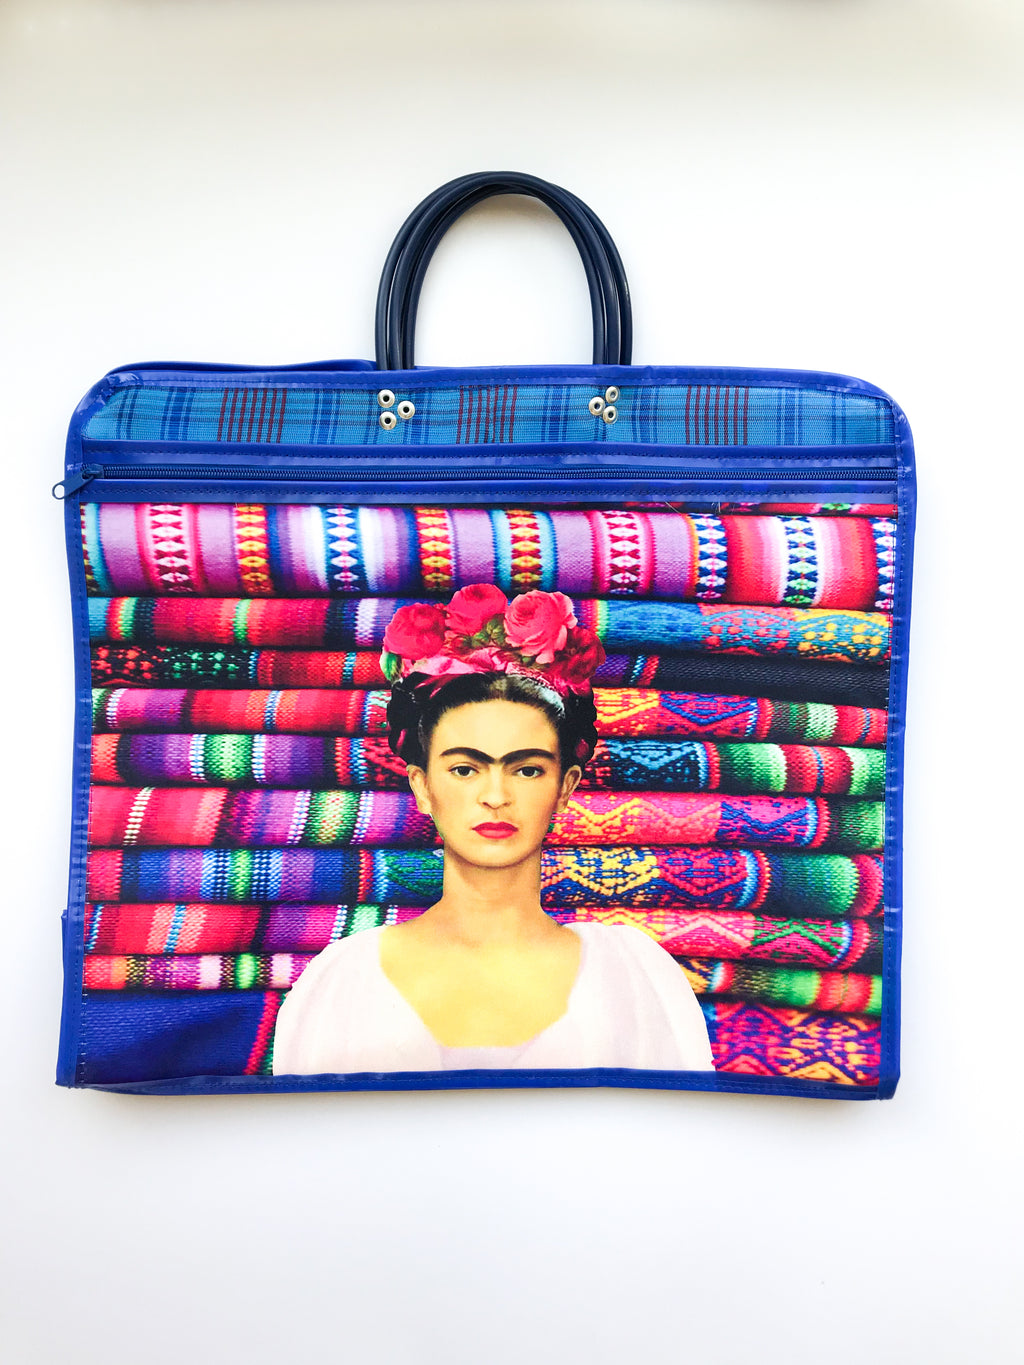 Market Frida blue bag